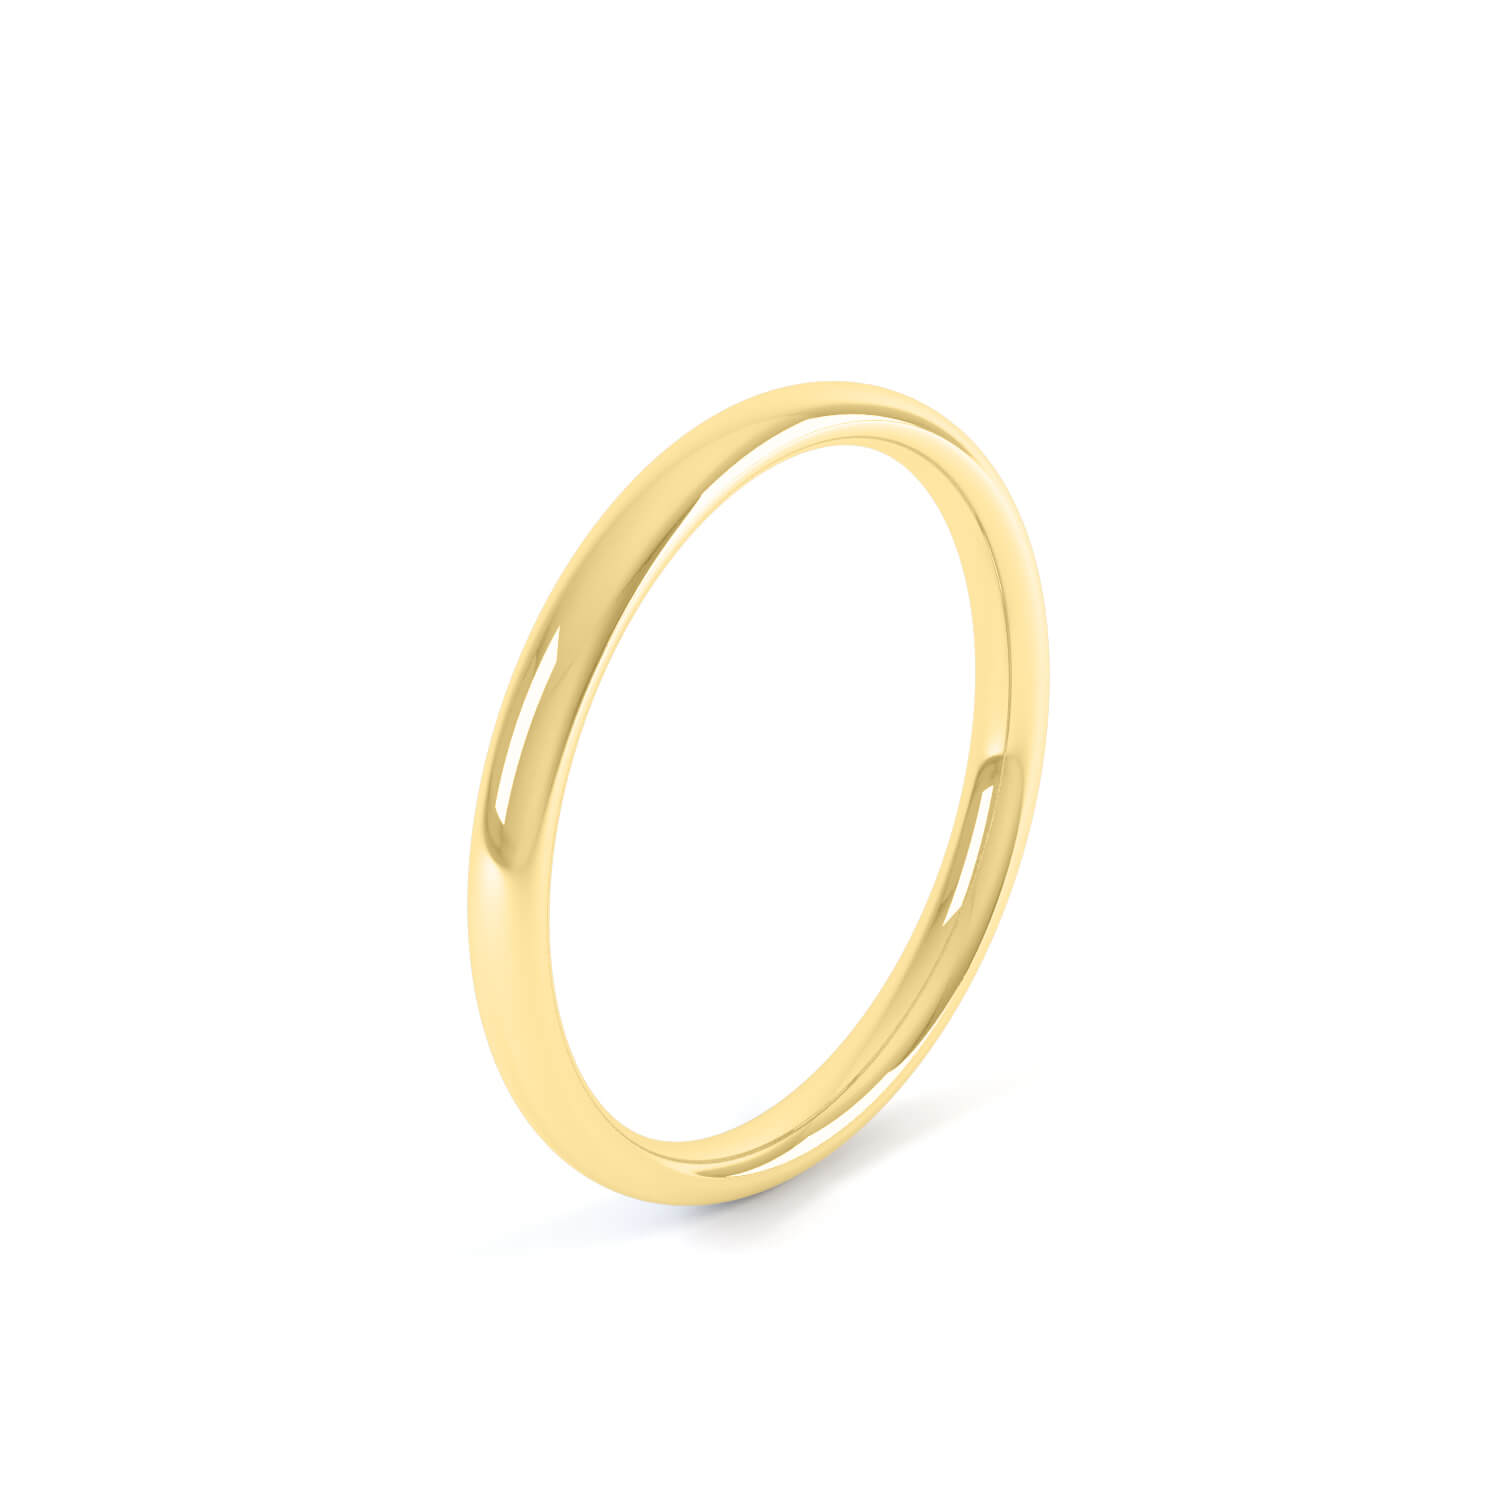 Queensmith's  2mm Light Court Wedding Band  , in 18k yellow gold